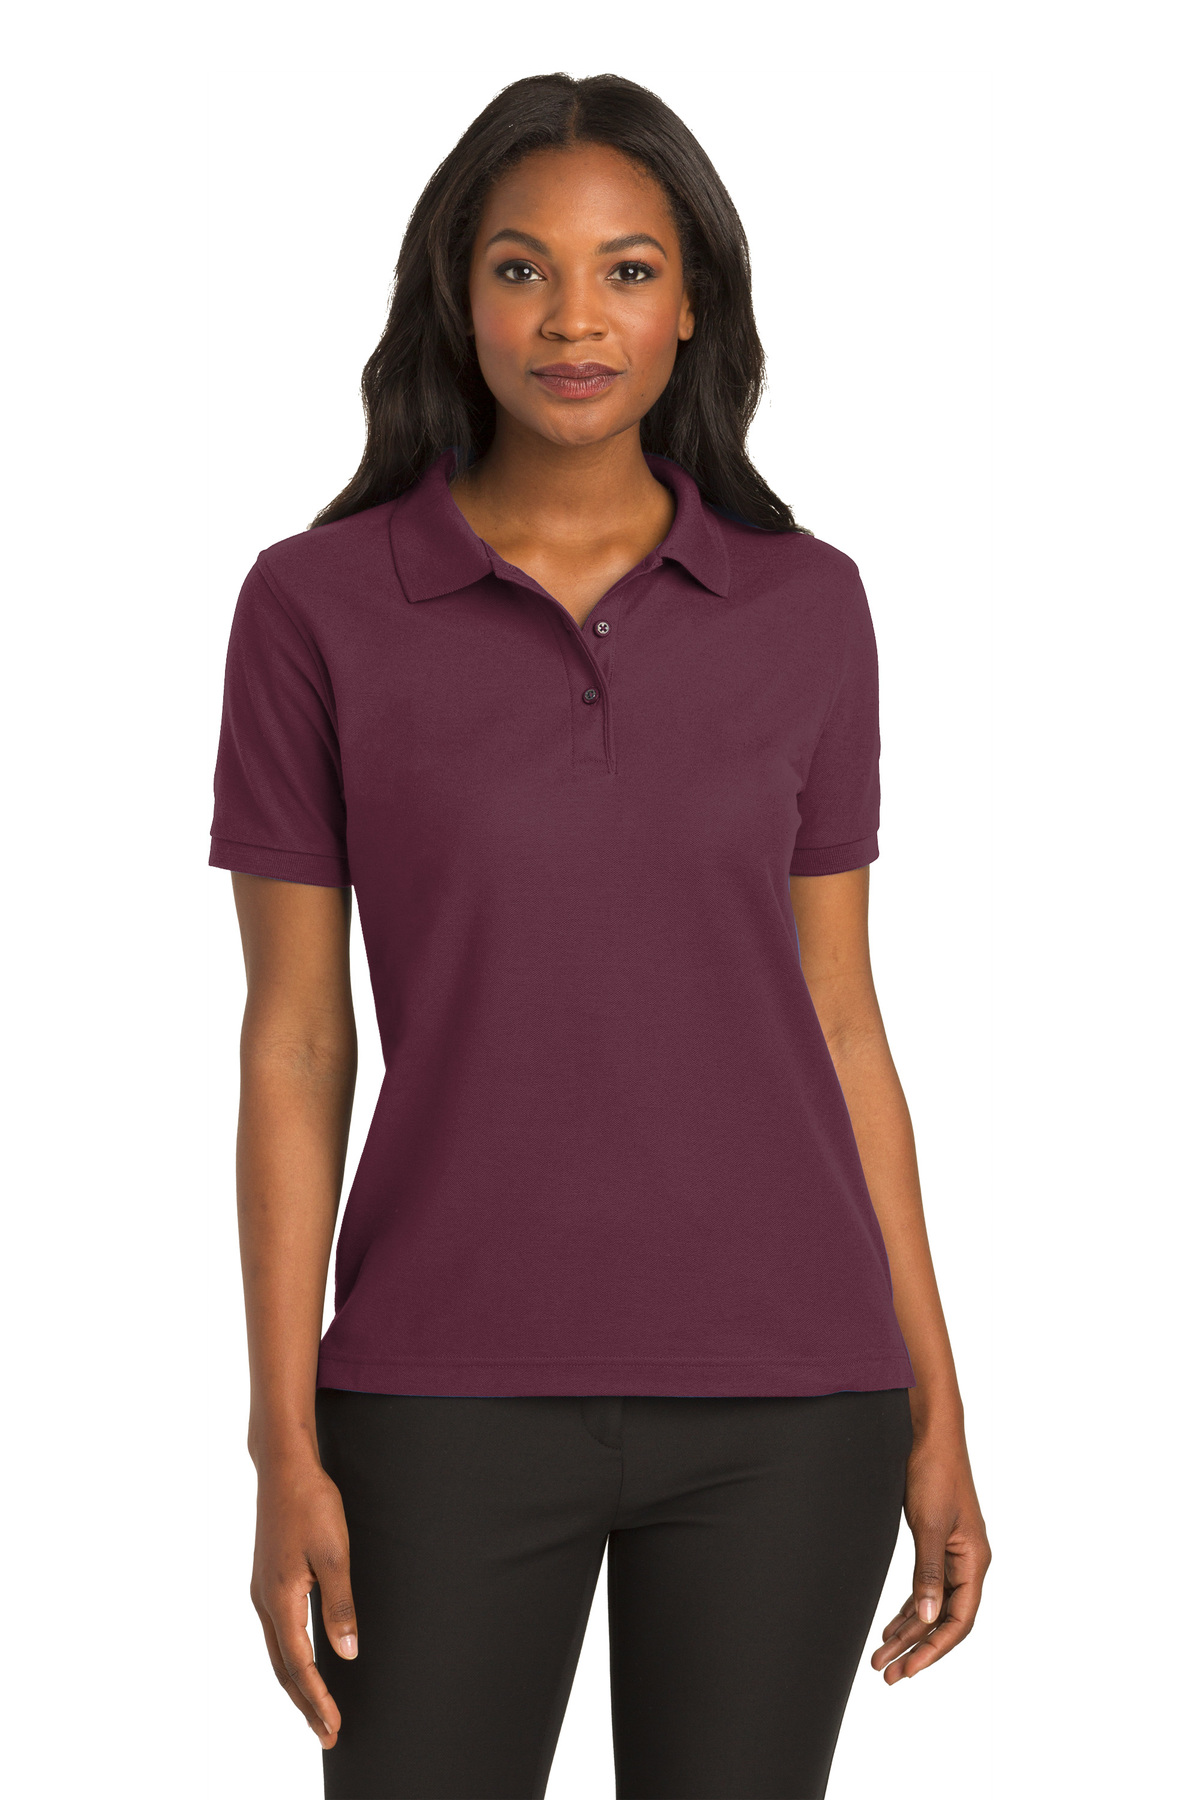 Port Authority Silk Touch Polo K500 Bright Lavender